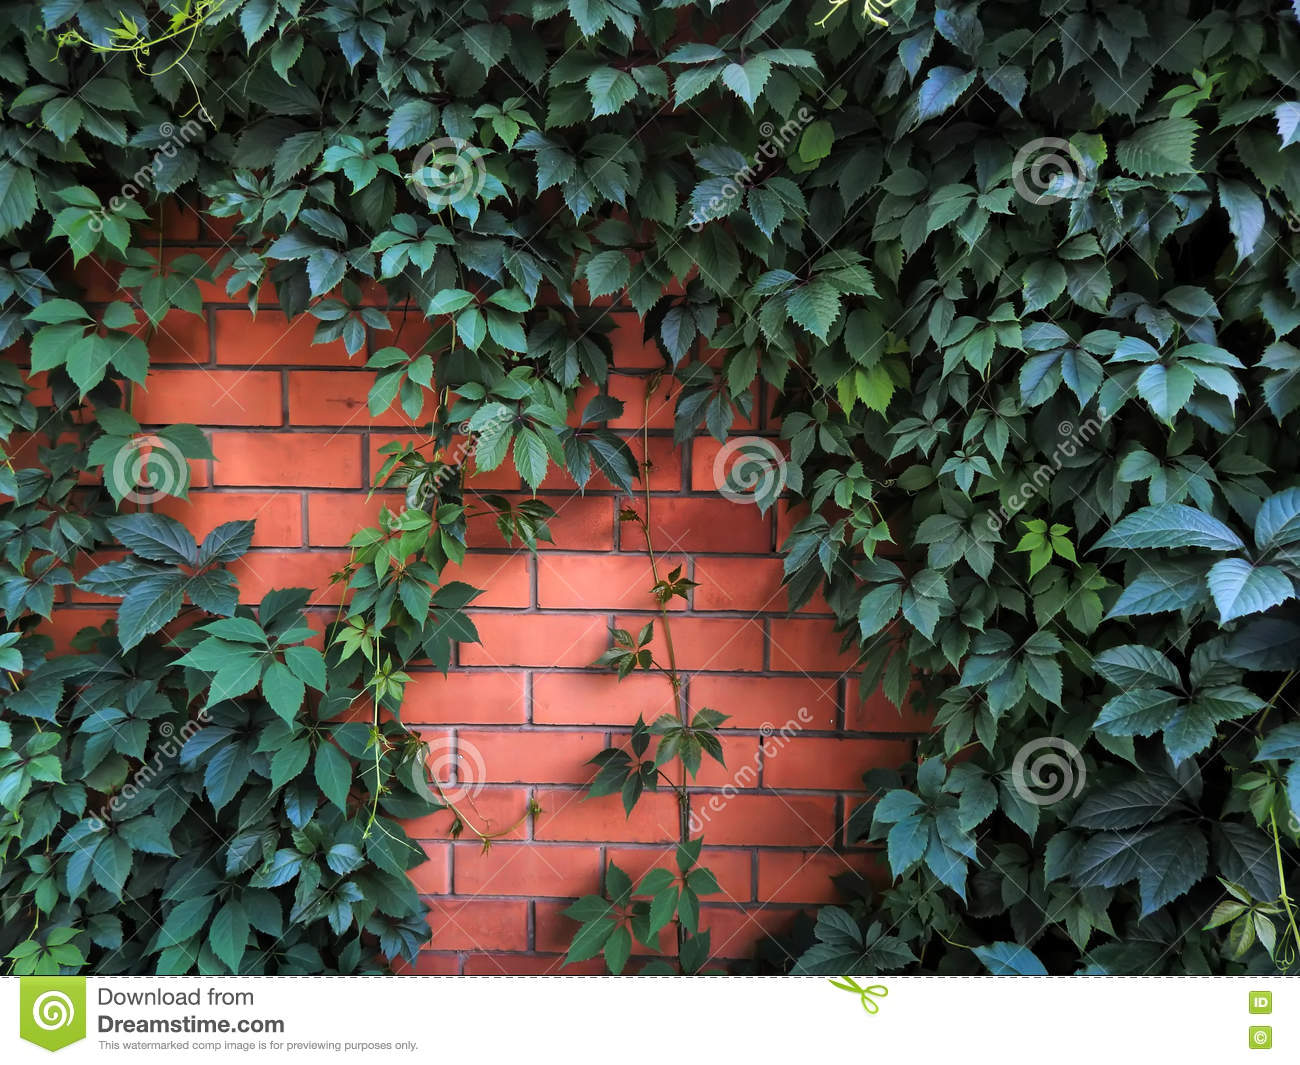 Decorative hops growing on a brick wall garden stock photo image royalty free stock photo download decorative hops growing on a brick wall garden amipublicfo Images